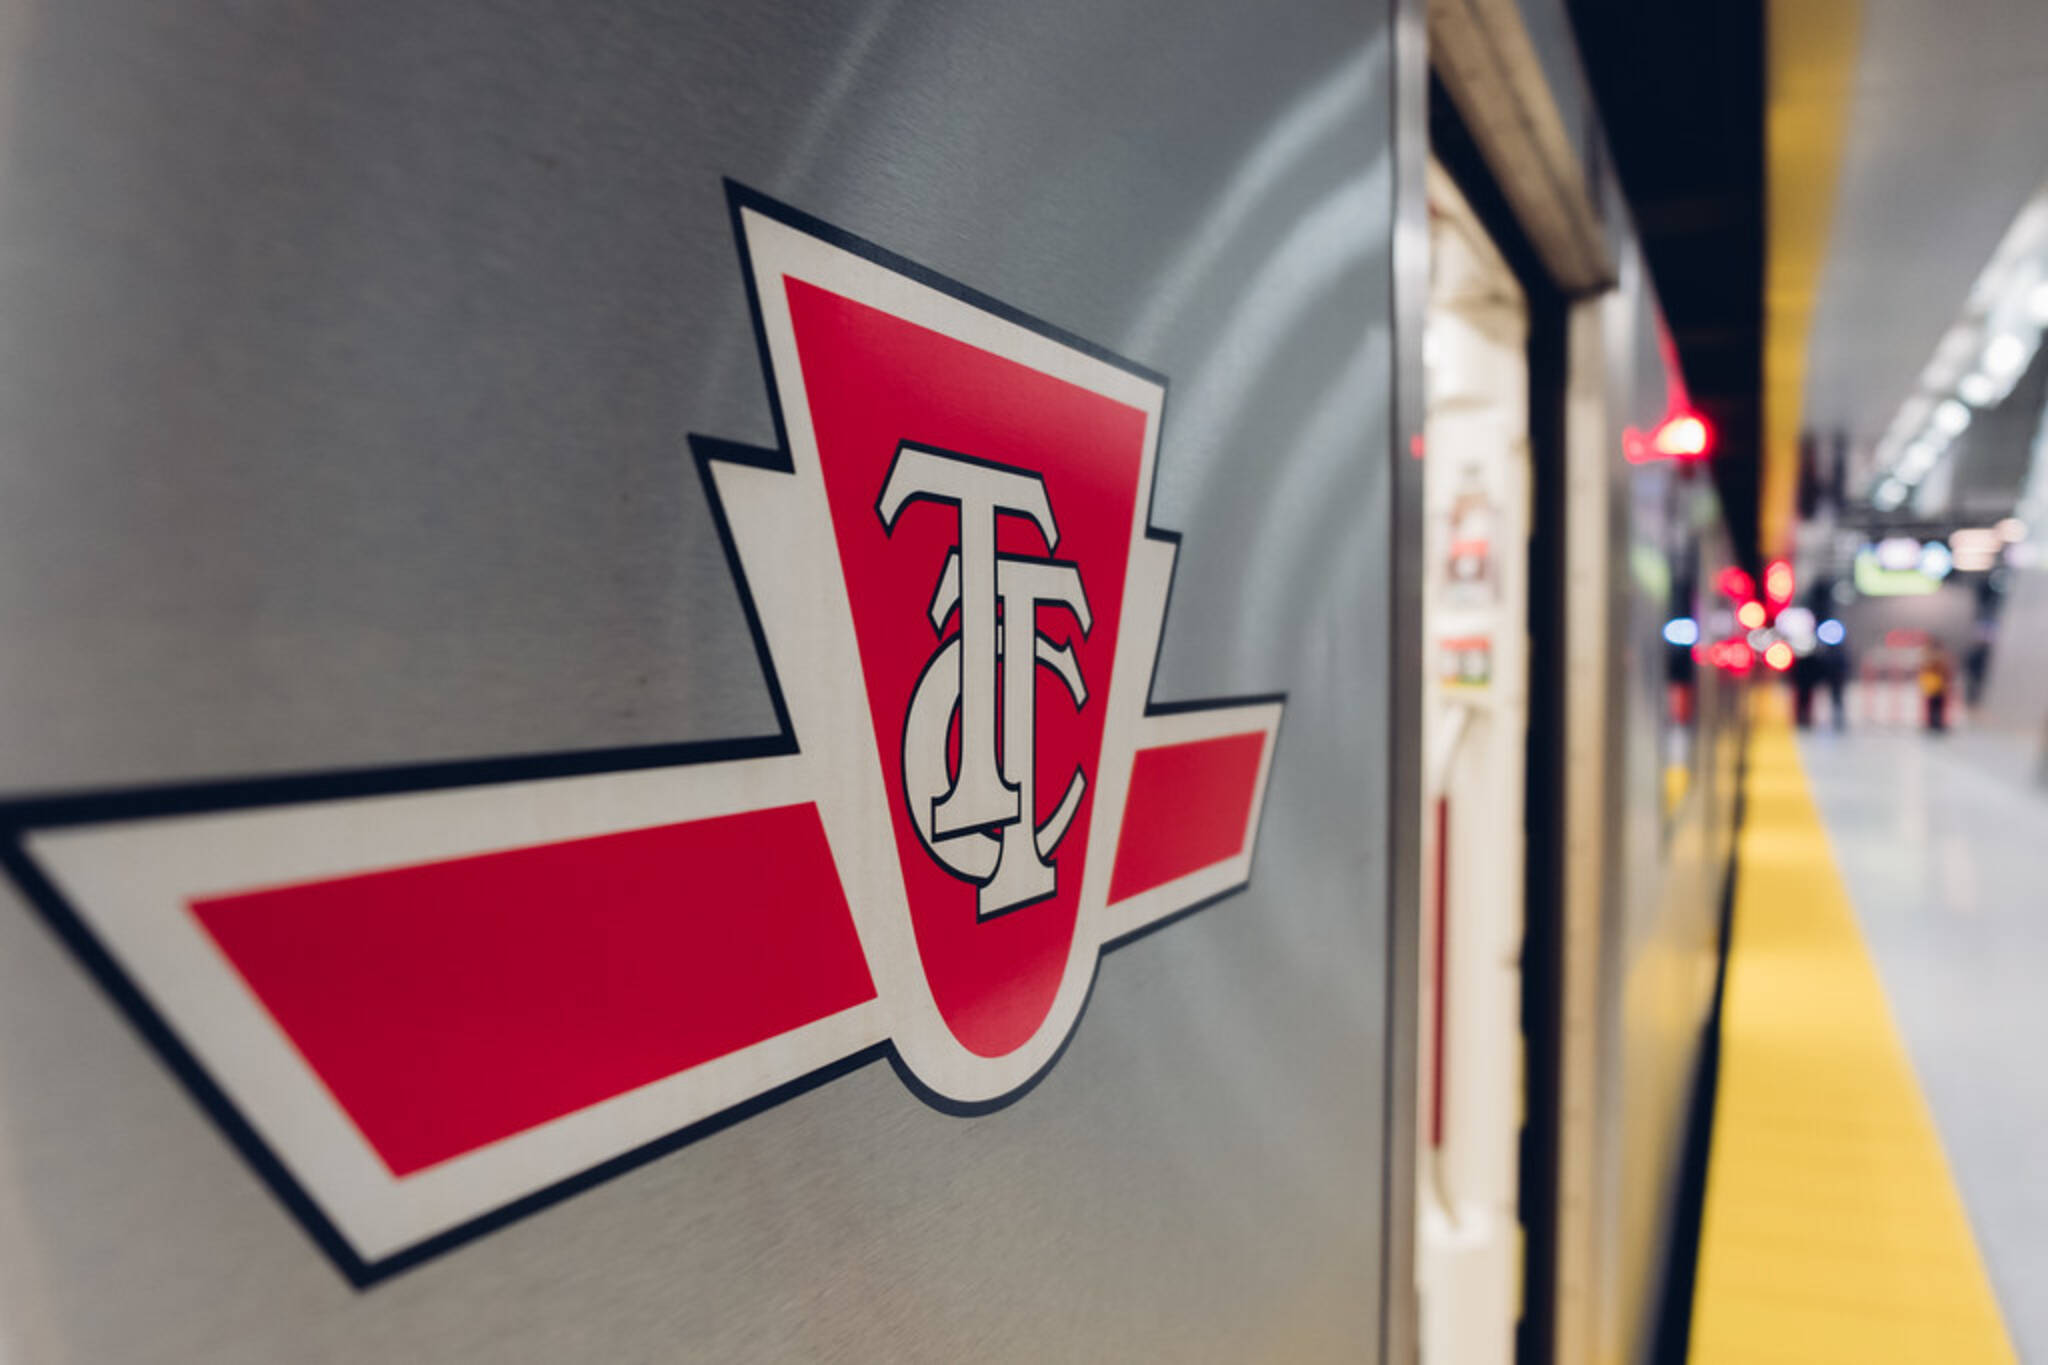 Here's a list of all the scheduled TTC closures for 2019